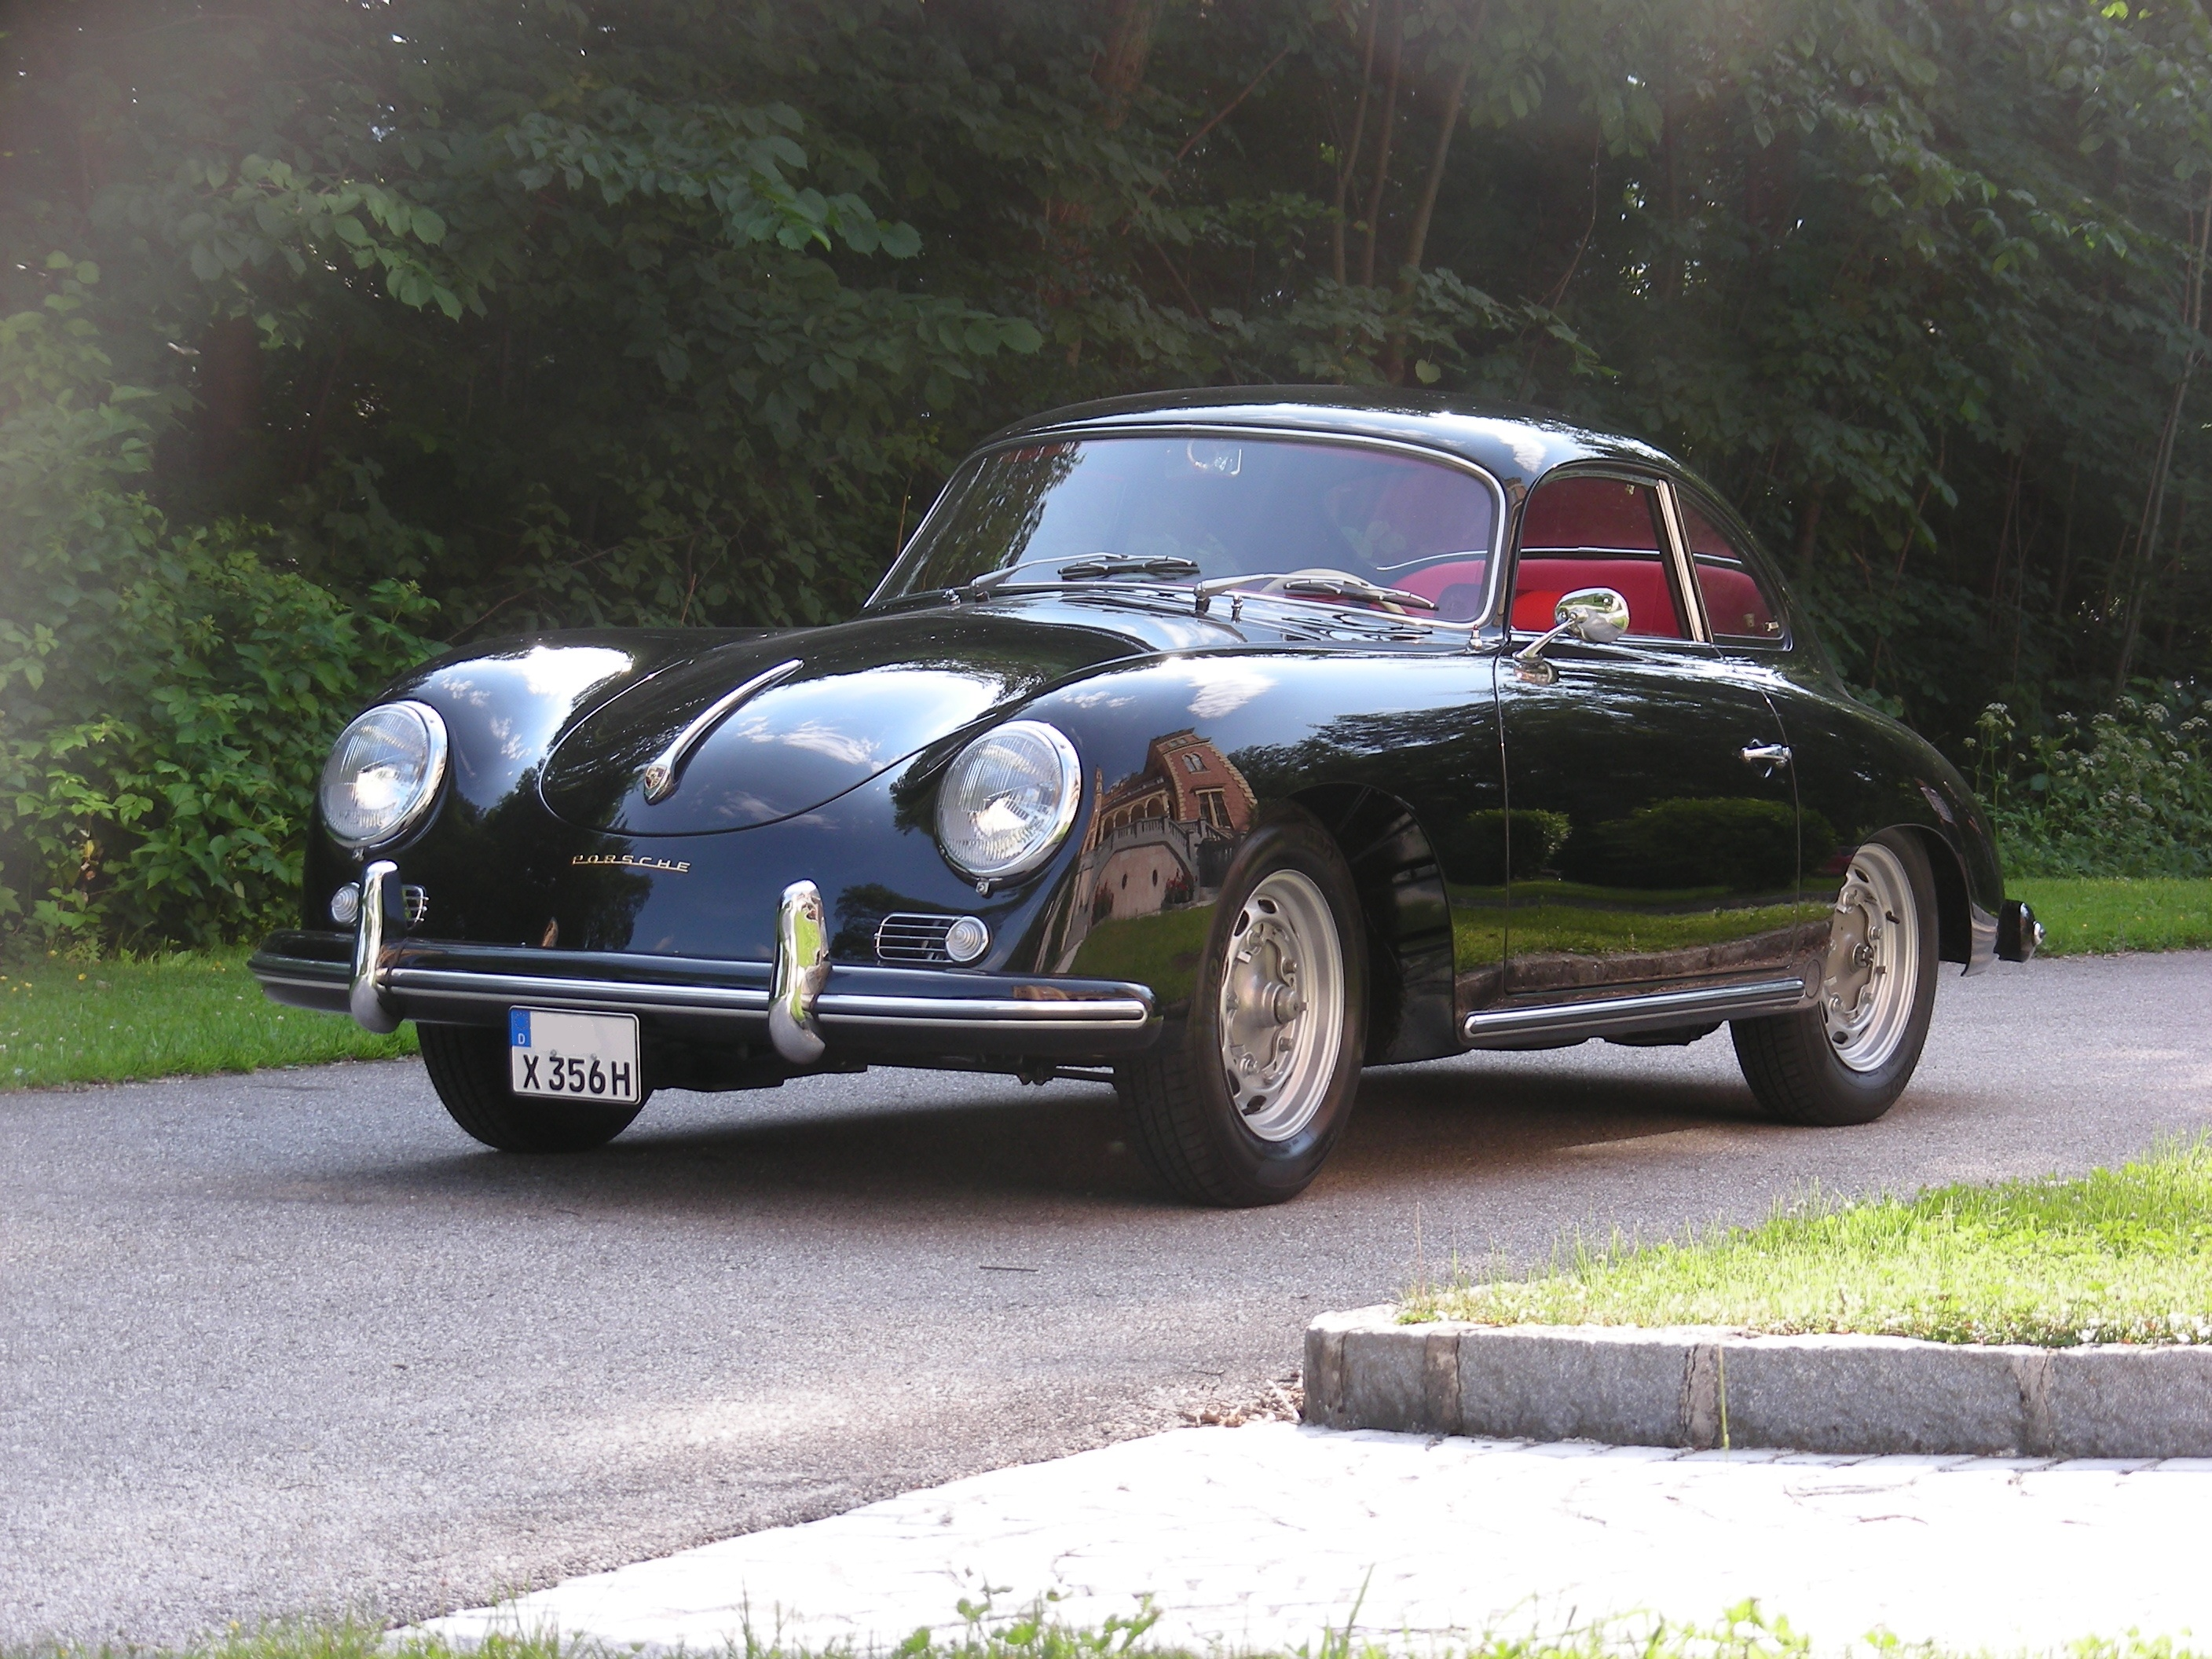 porsche 356 a coupe modell t1 sold bb classics. Black Bedroom Furniture Sets. Home Design Ideas